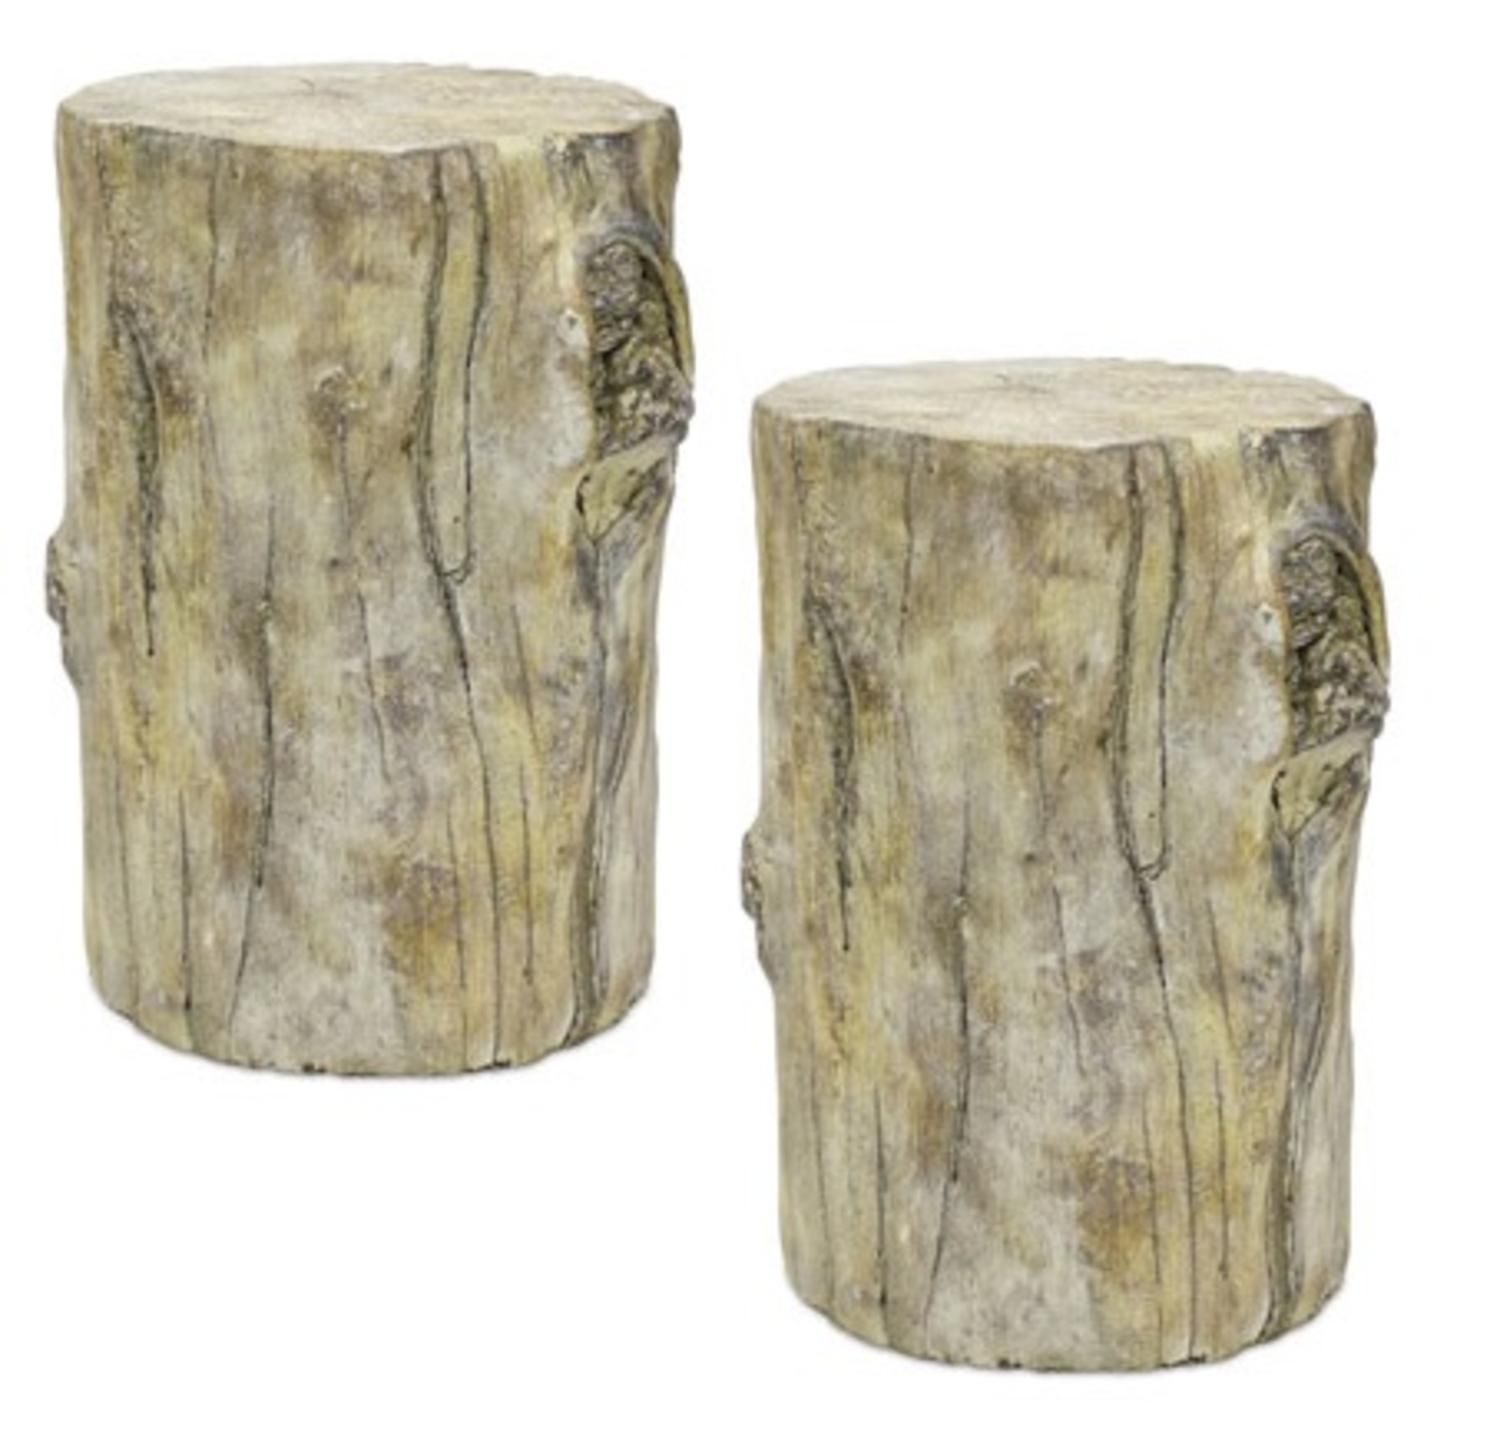 Set of 2 Natural Rustic Finish Cement Tree Trunk Accent and Garden Stands 8� by Melrose